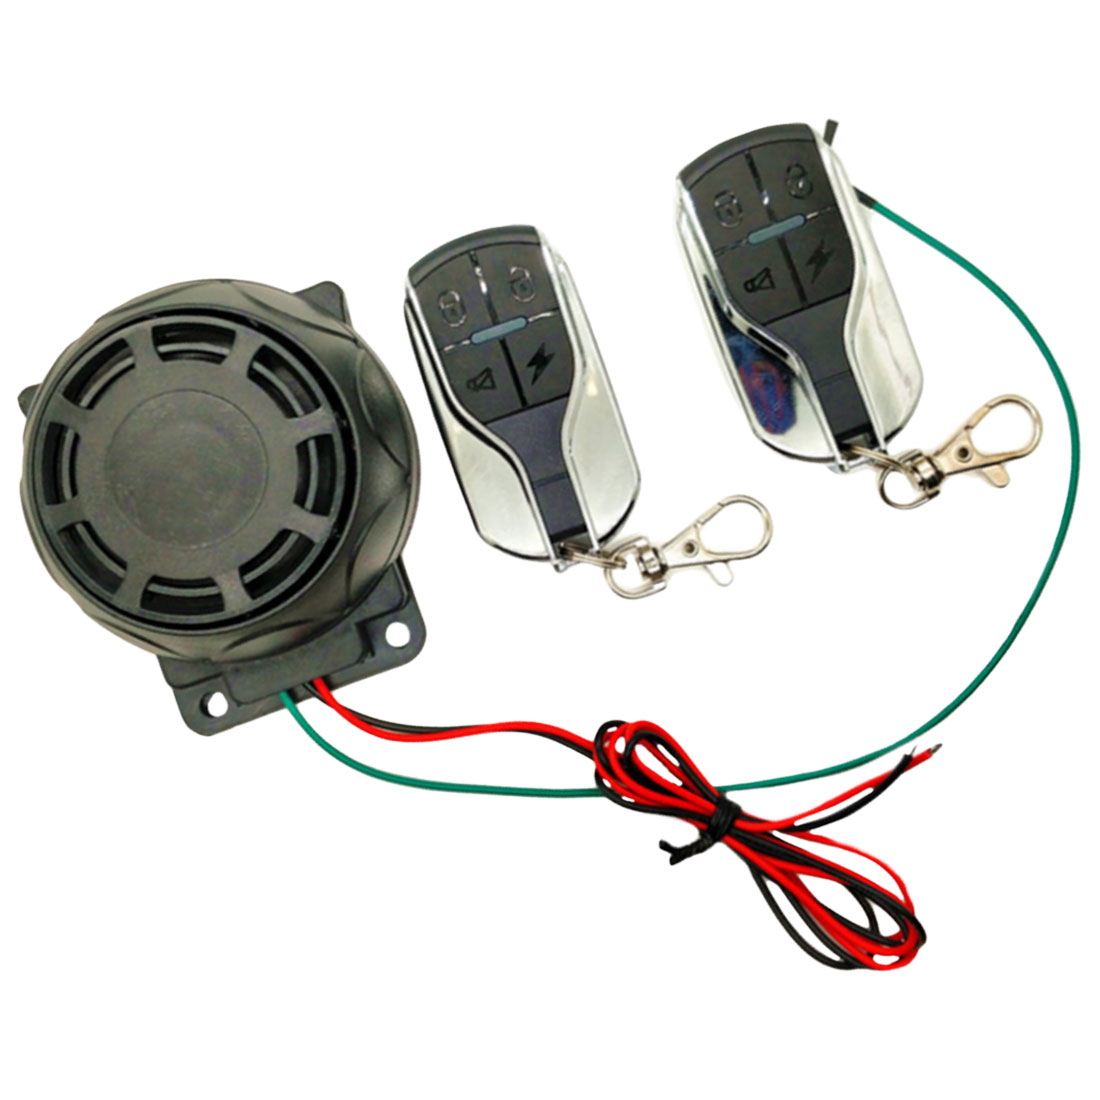 Remote Control Motorbike Security Alarm Systems Motorcycle Anti-theft Bike Scooter Alarm Systems Dual Remote Control Power